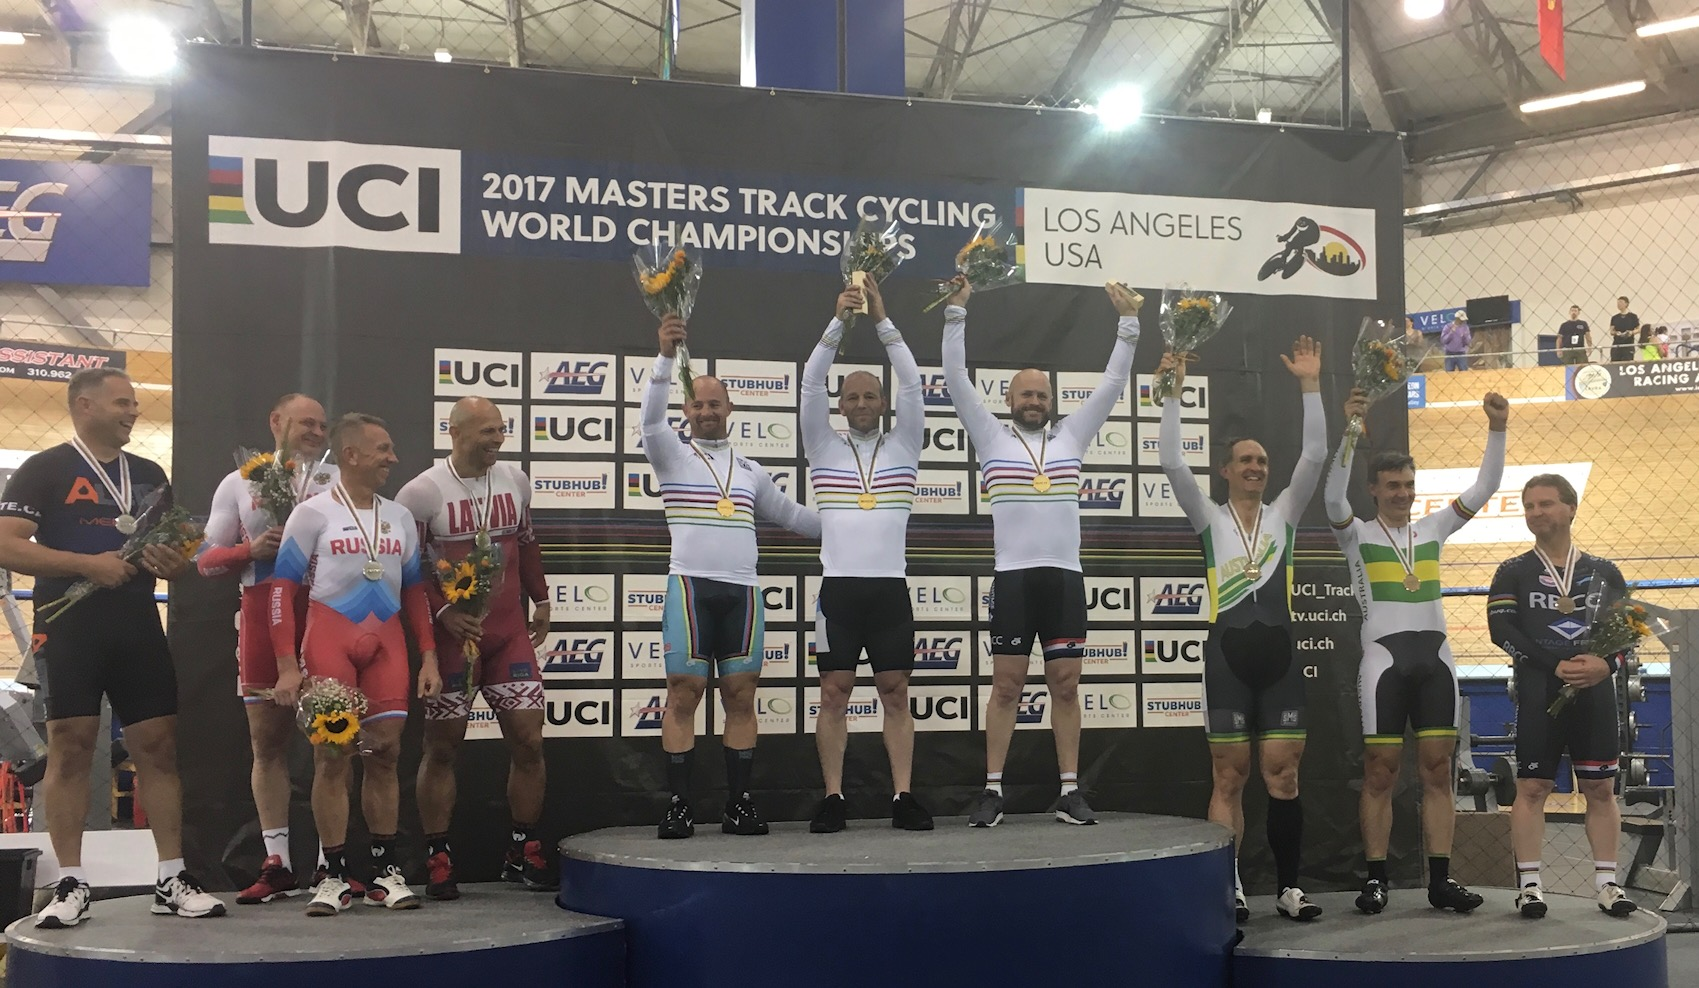 Los Angeles World Masters Track Championships October 17 - Mike Smith took Gold in the Team Sprint